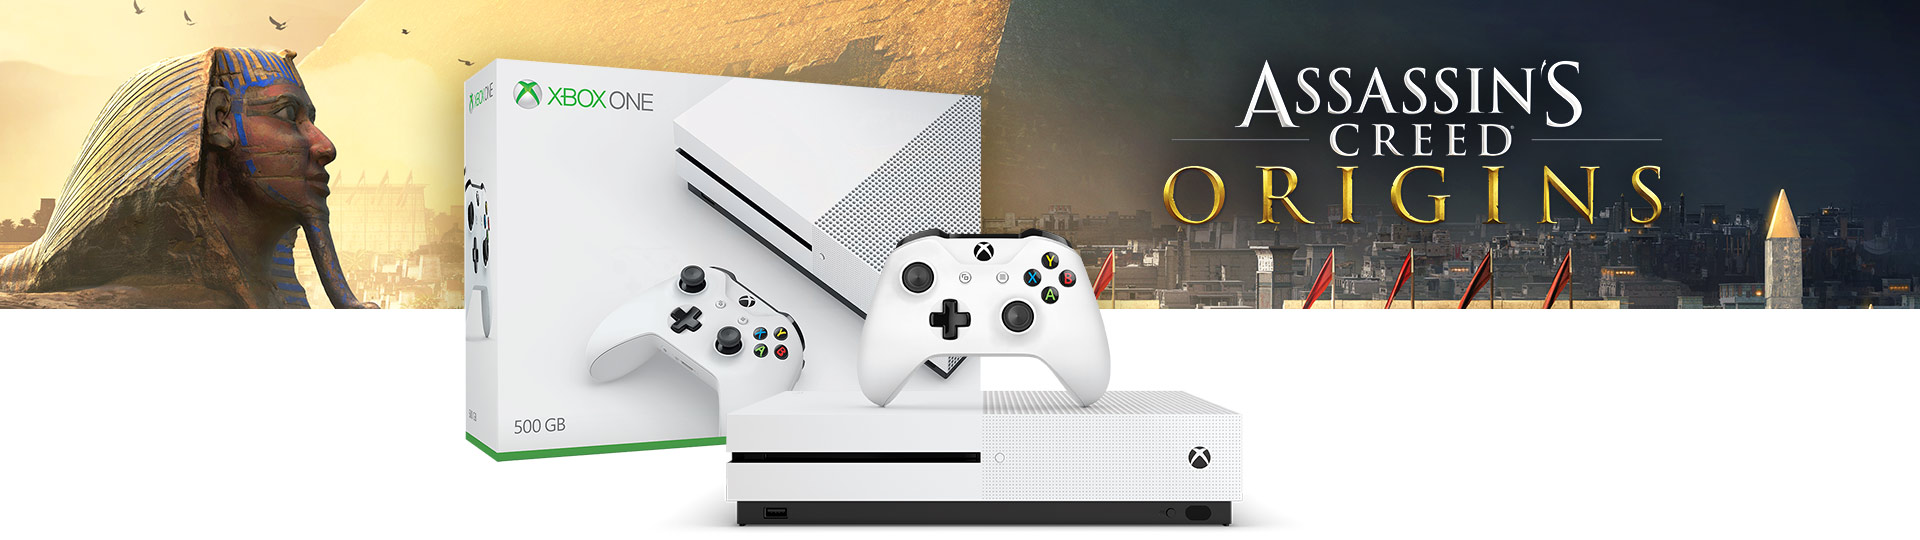 Xbox One S Assassin's Creed: Origins Bundle (500GB)